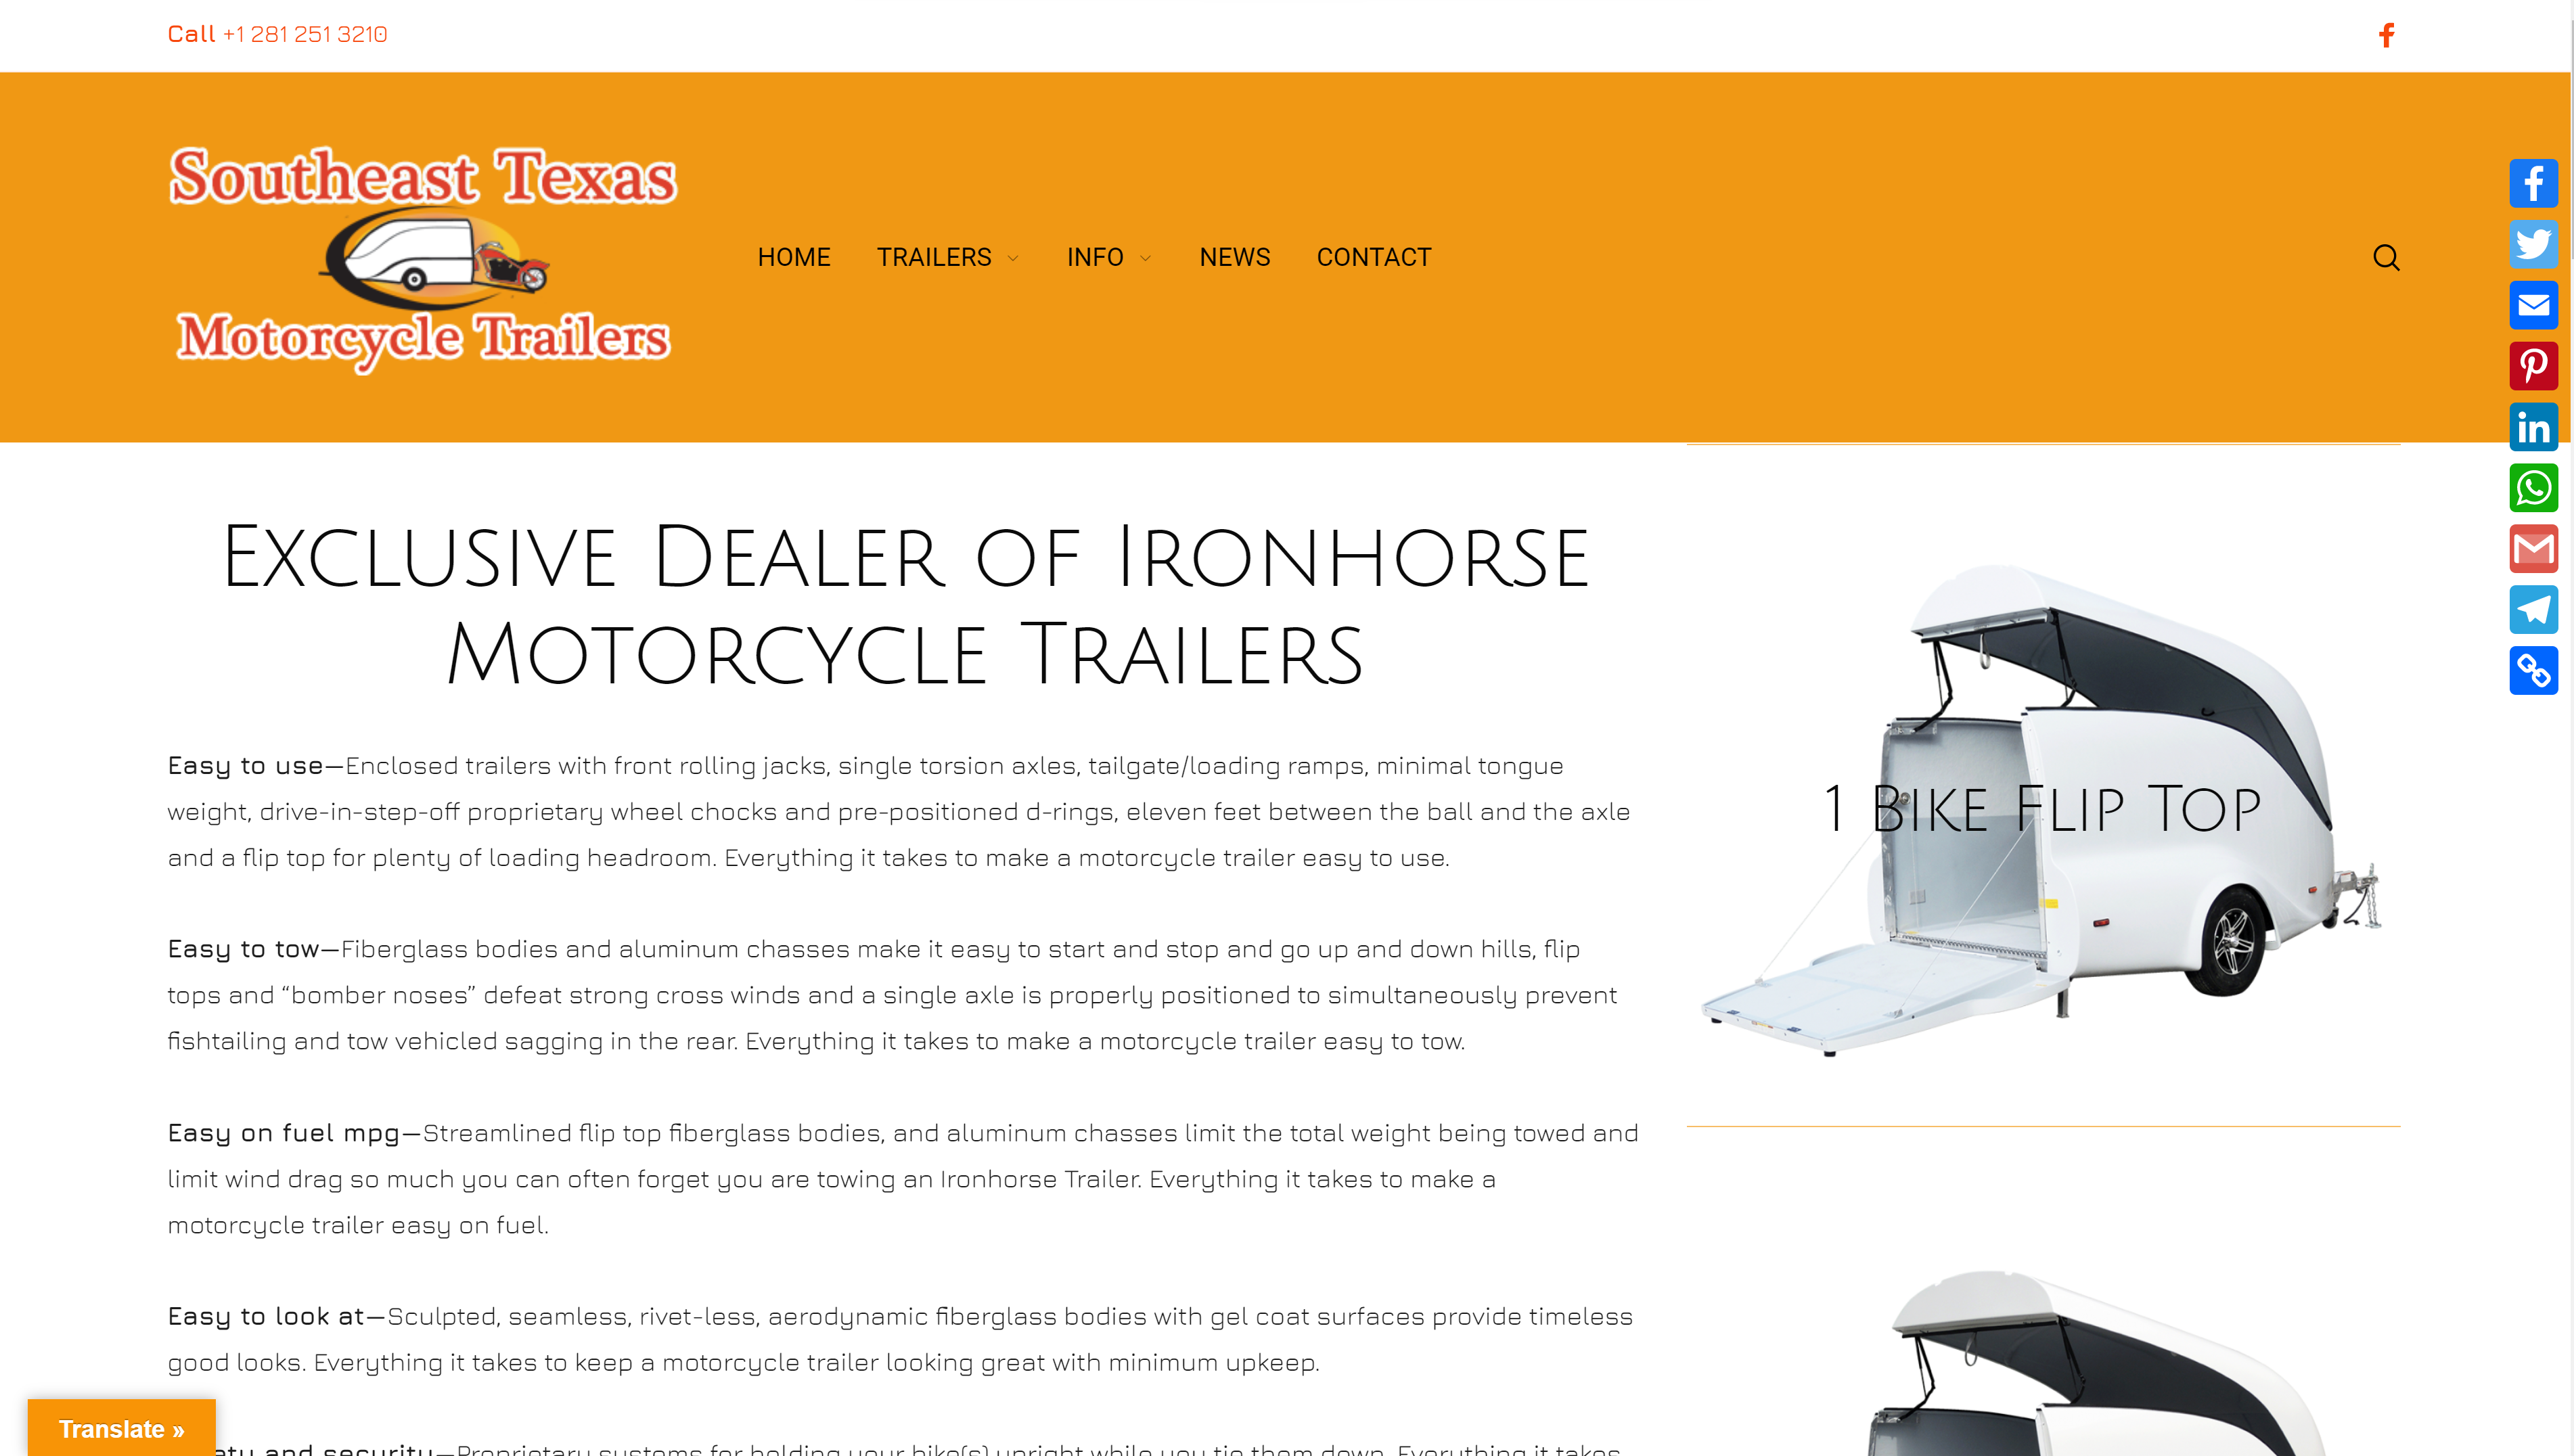 TrailersHouston, Southeast Texas Motorcycle Trailers, selling Ironhorse motorcycle trailers from Houston Texas